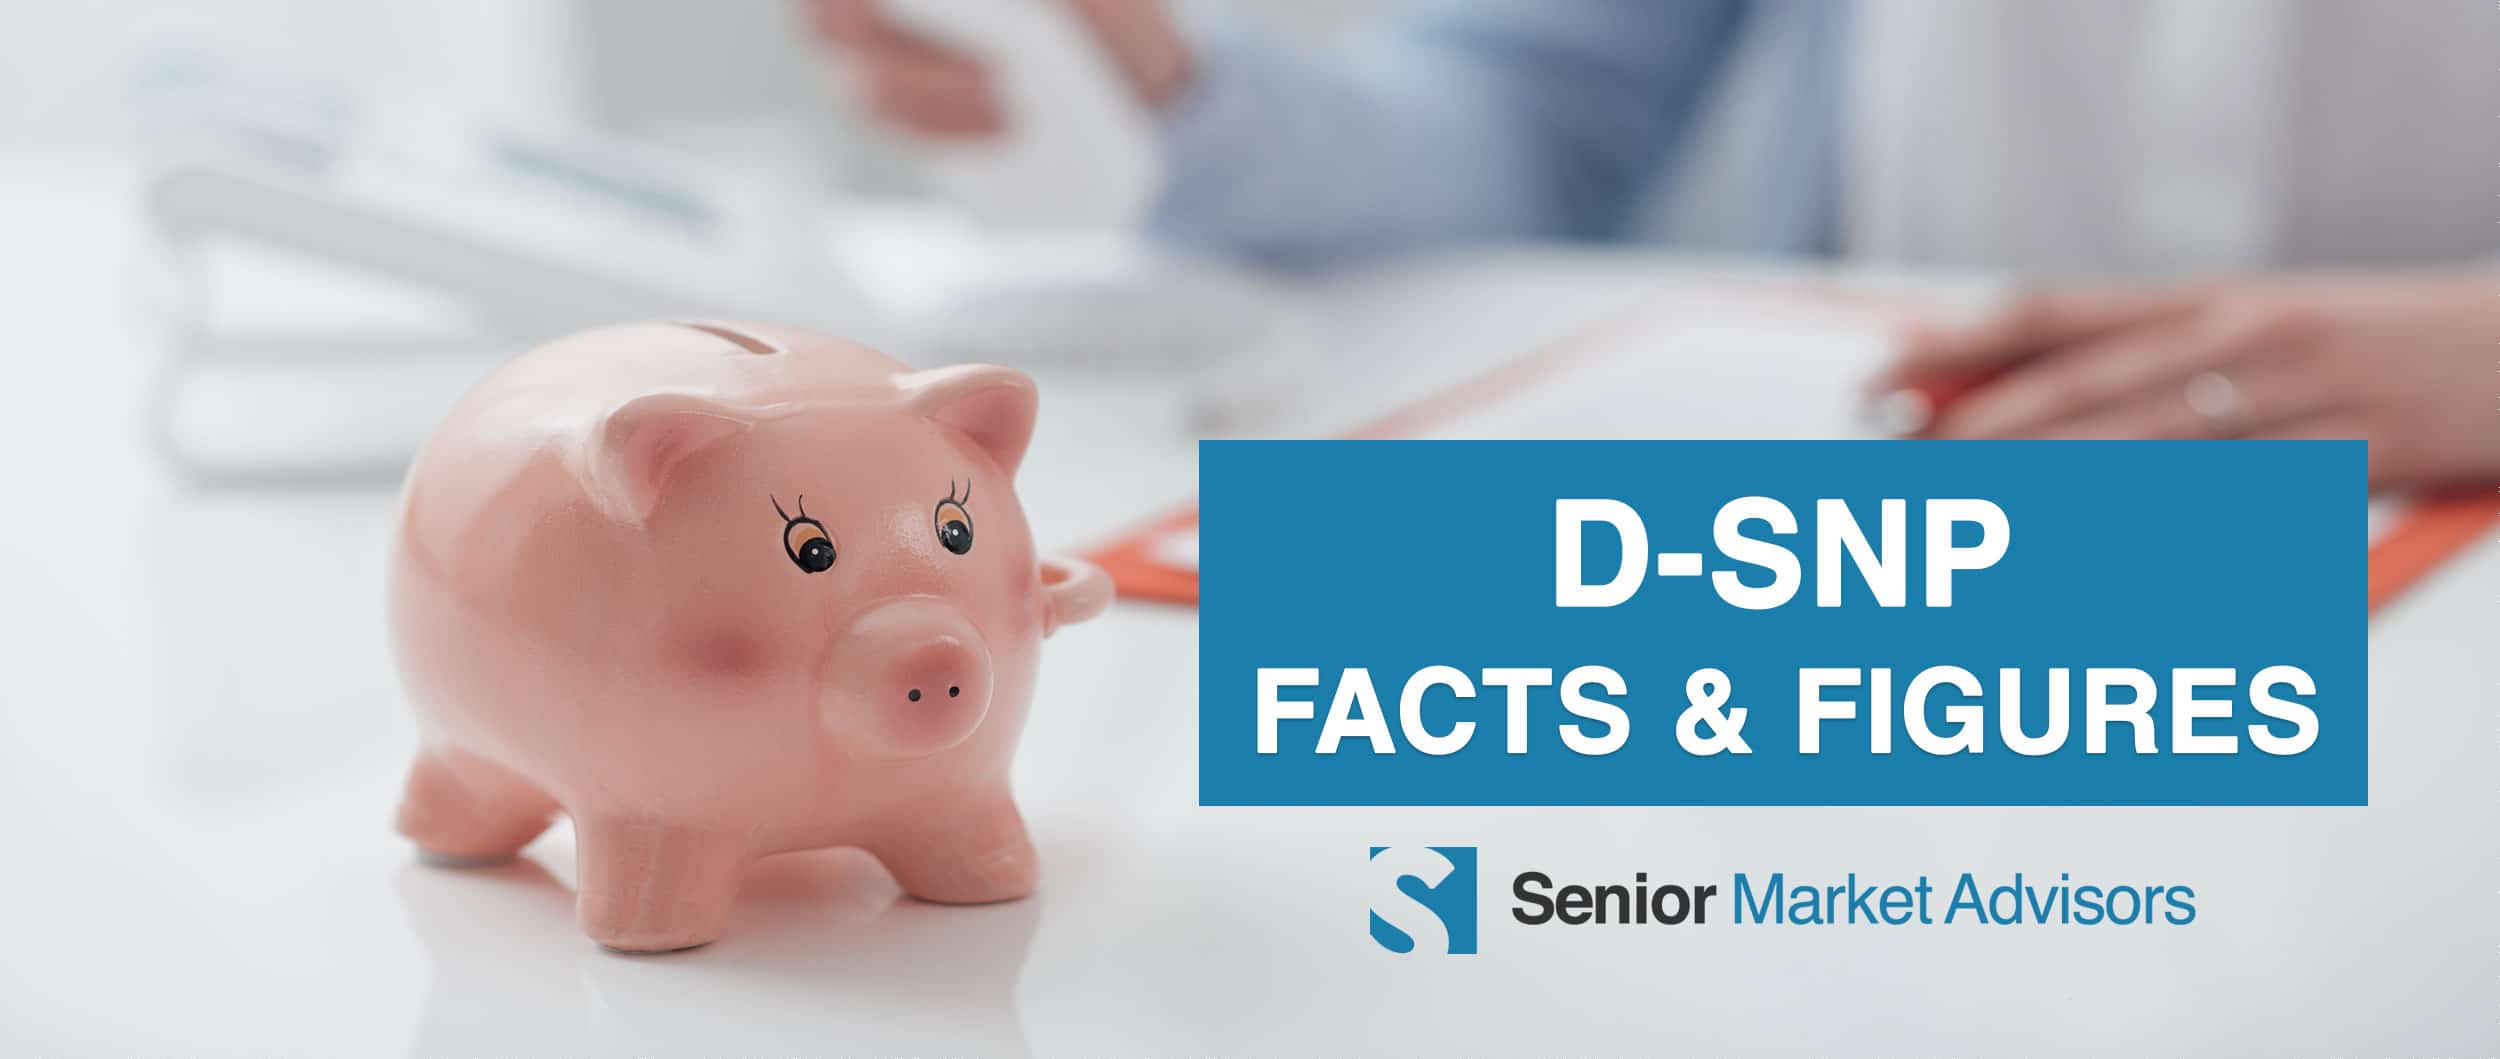 DSNP Facts and Figures | Senior Market Advisors